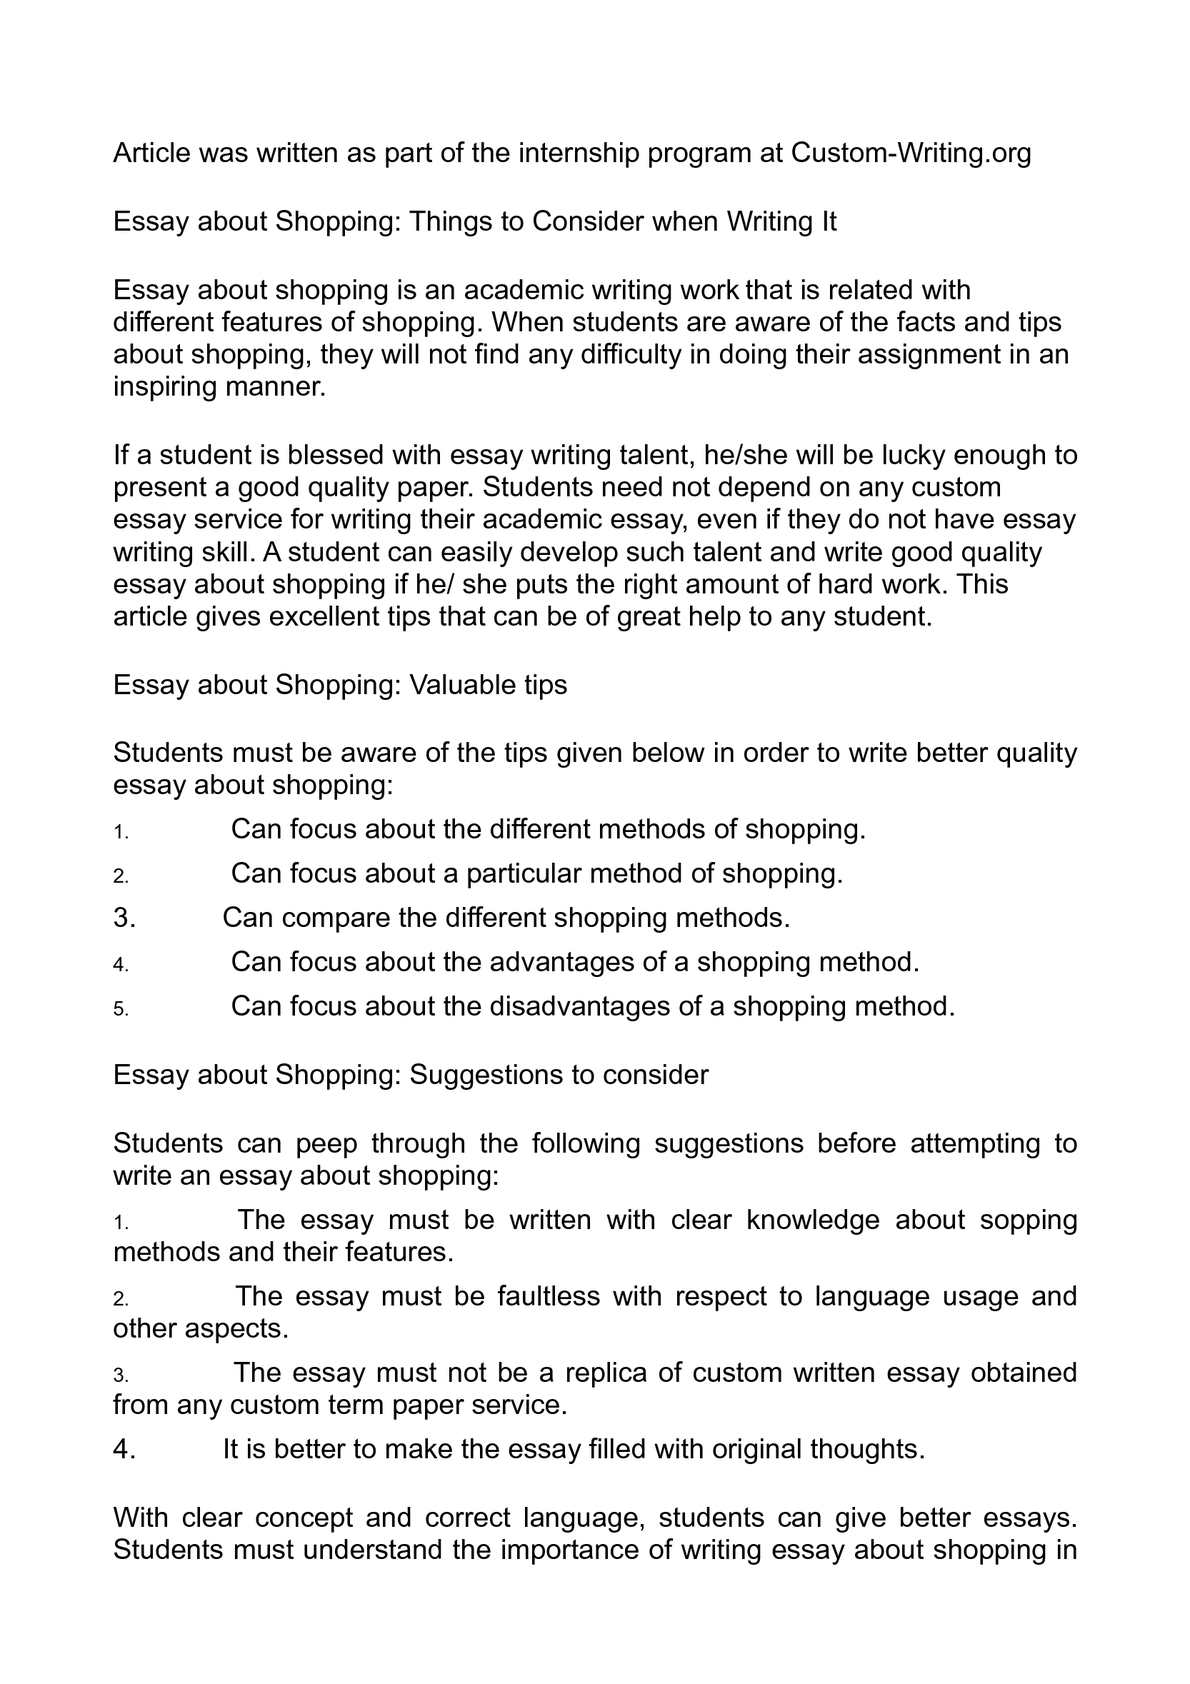 006 How To List Things In An Essay About Shopping Consider When Writing It Of Write Topics What Funny Random Informative Myself Yourself For College Fearsome Correct Way Best Full